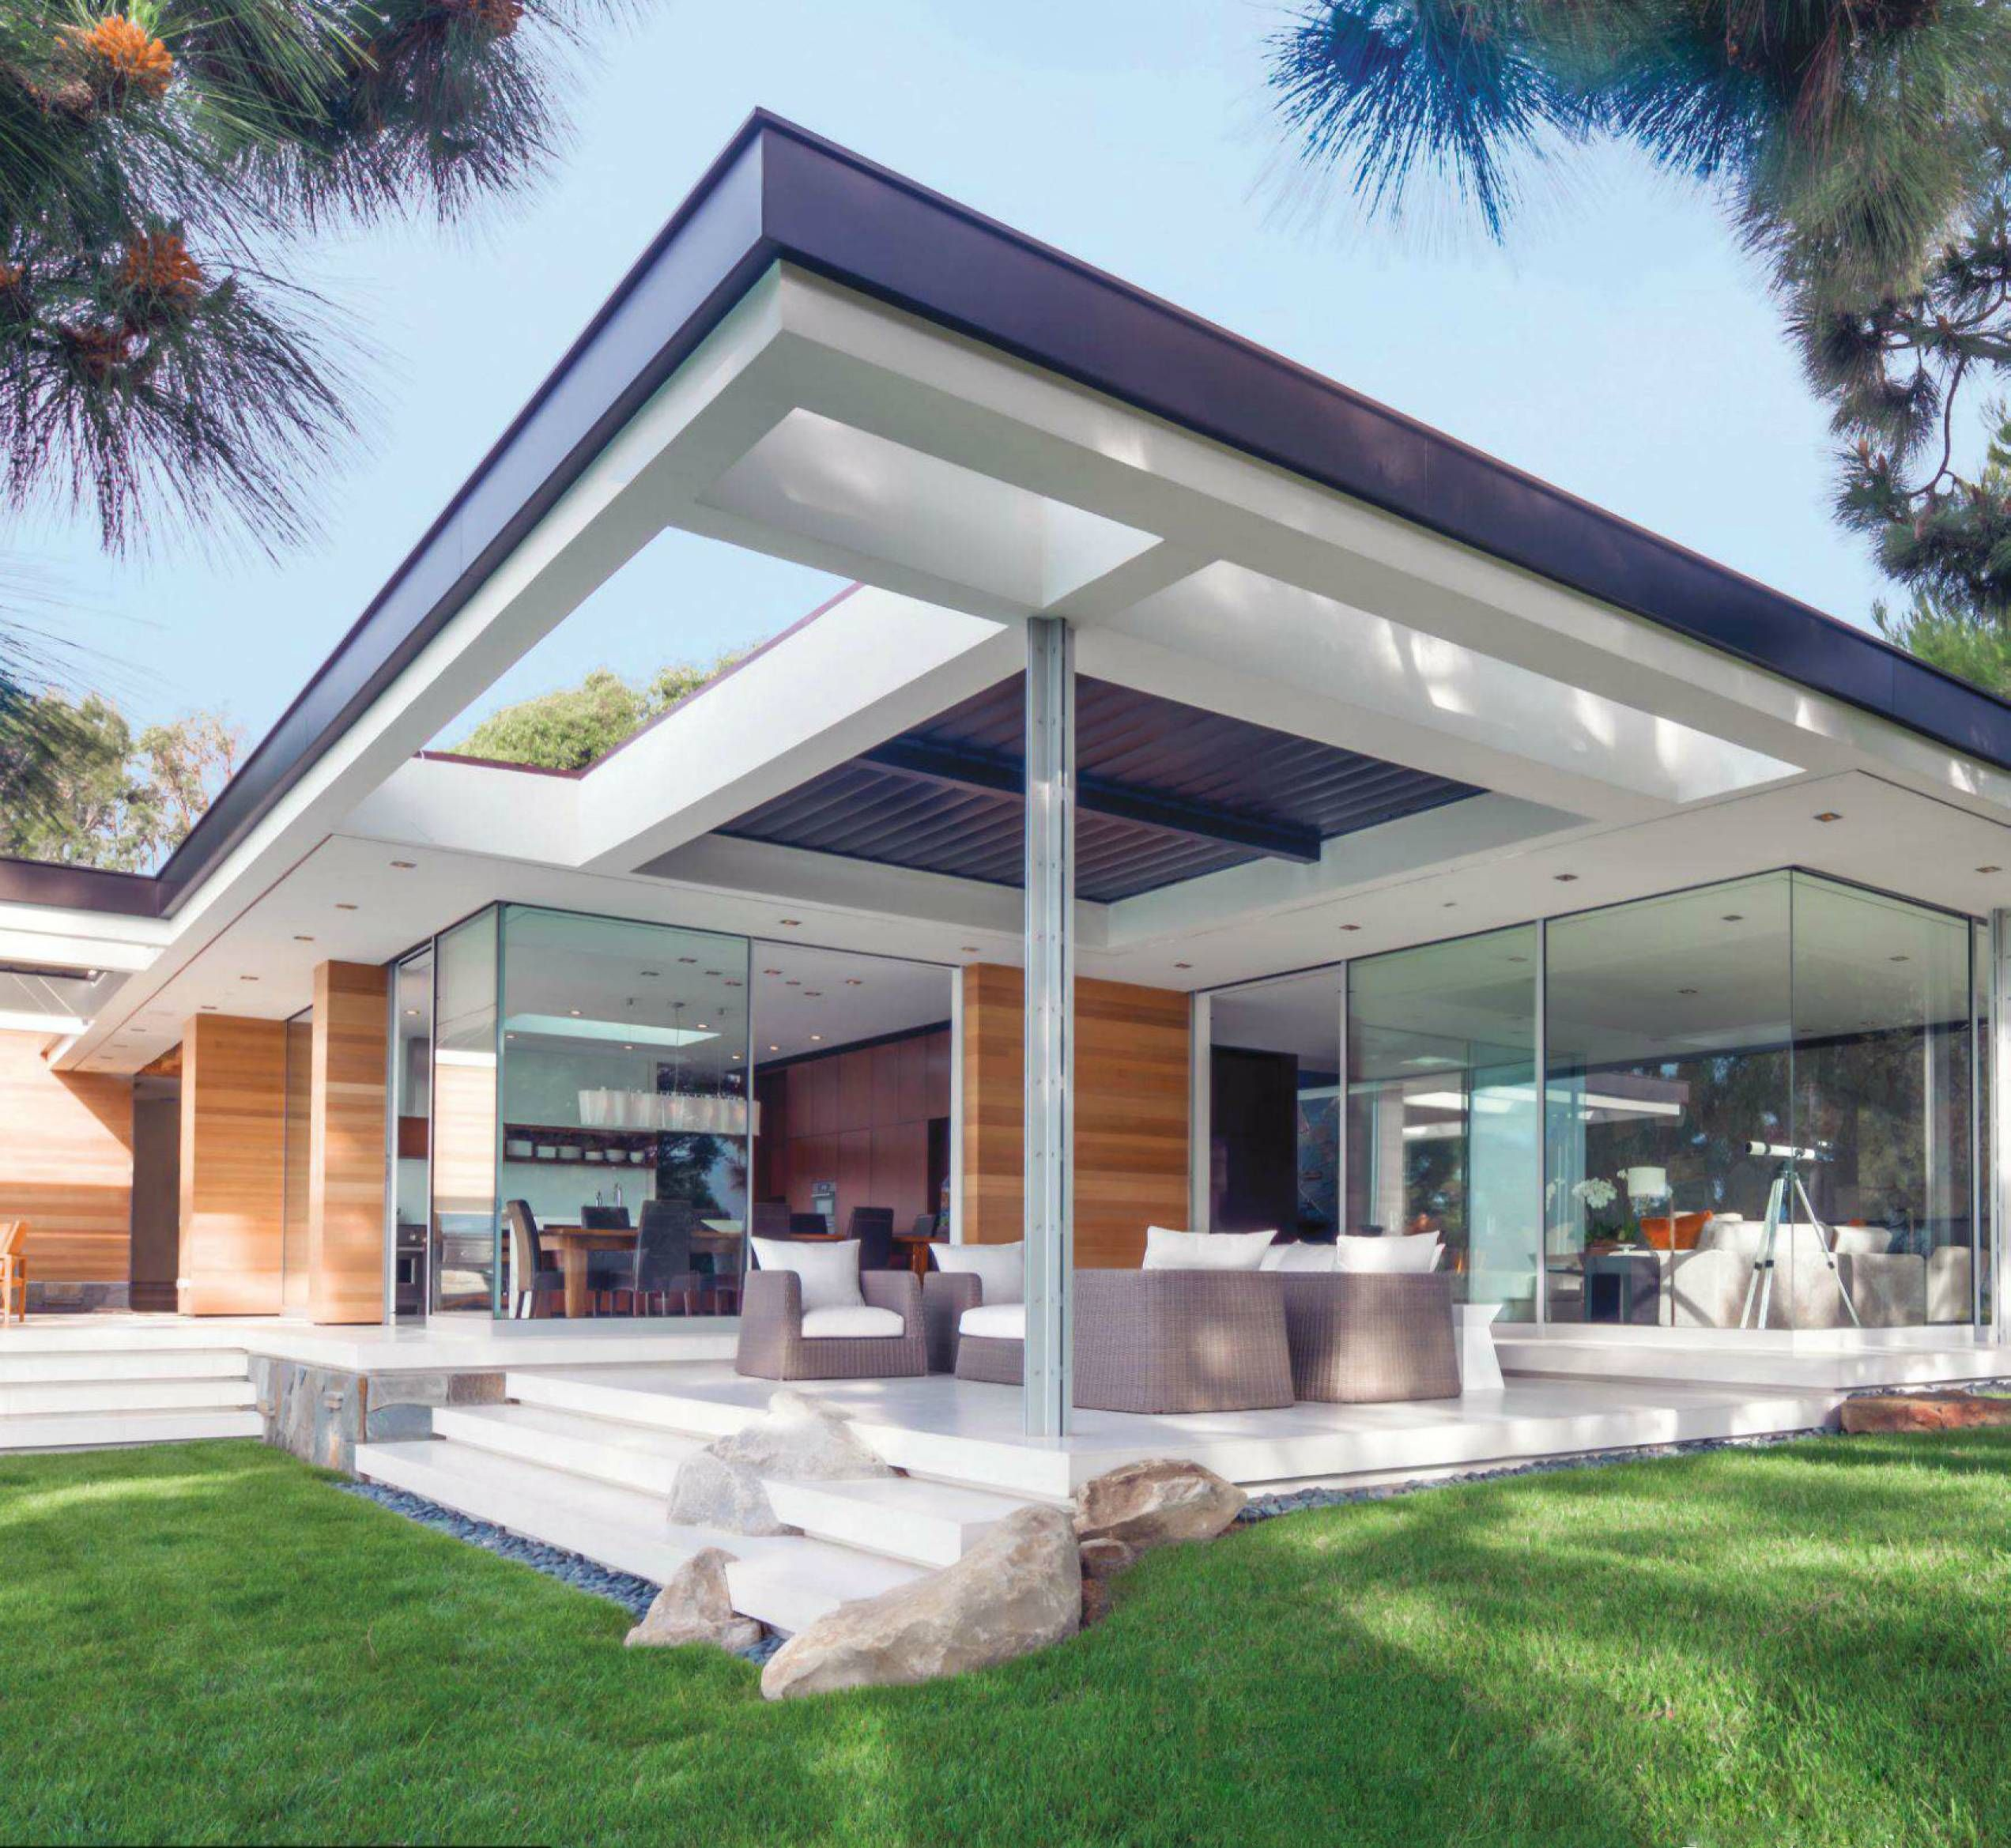 18 Awe Inspiring Modern Home Exterior Designs That Look Casual: Modern Home With Floor To Ceiling Glass Windows And